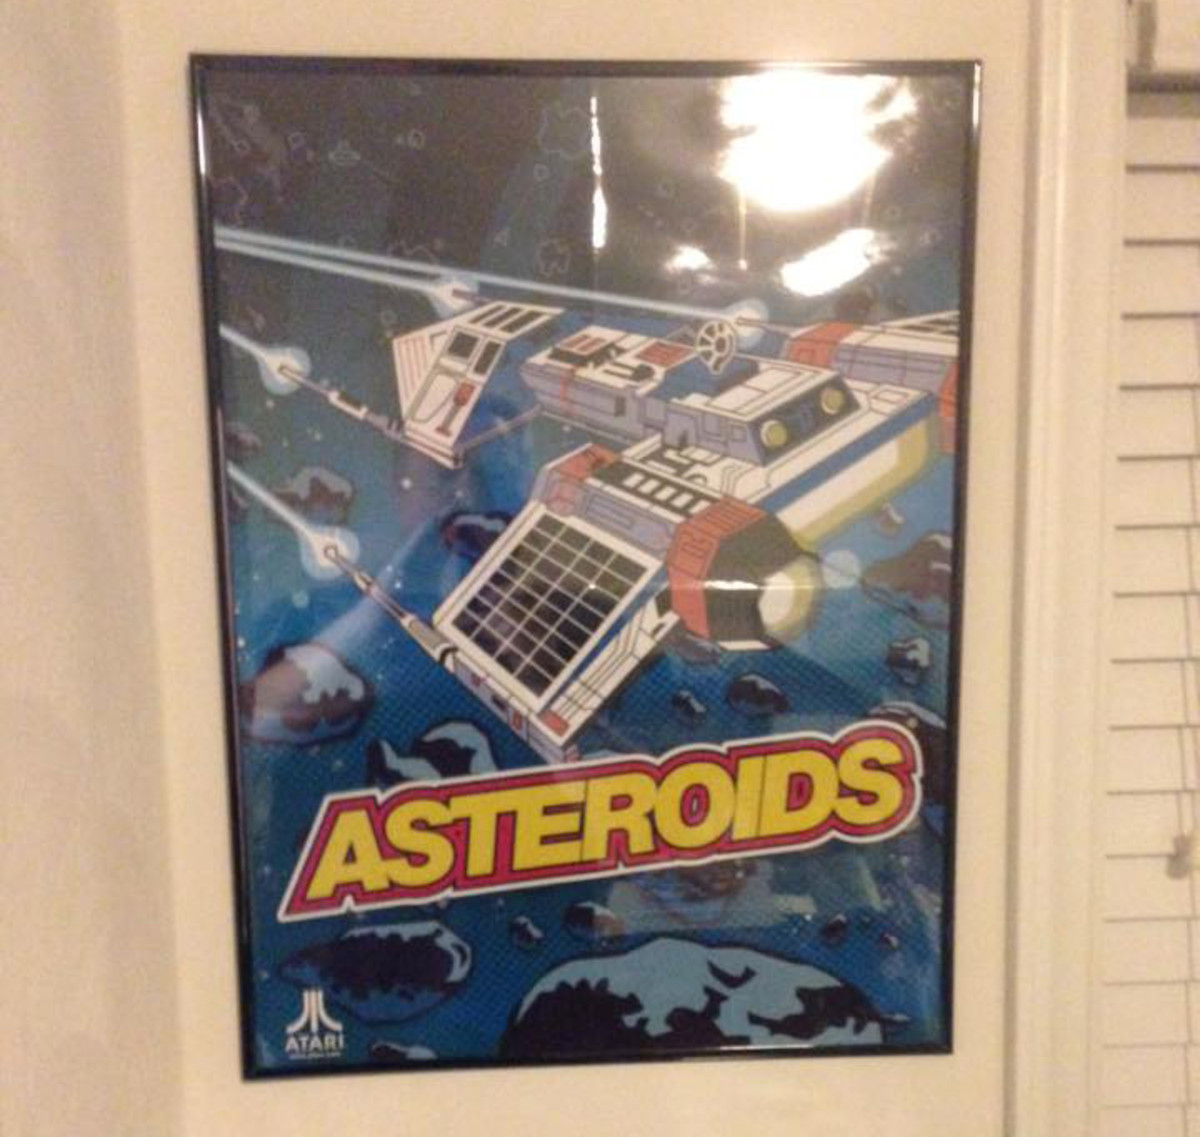 Poster framed without a mat.